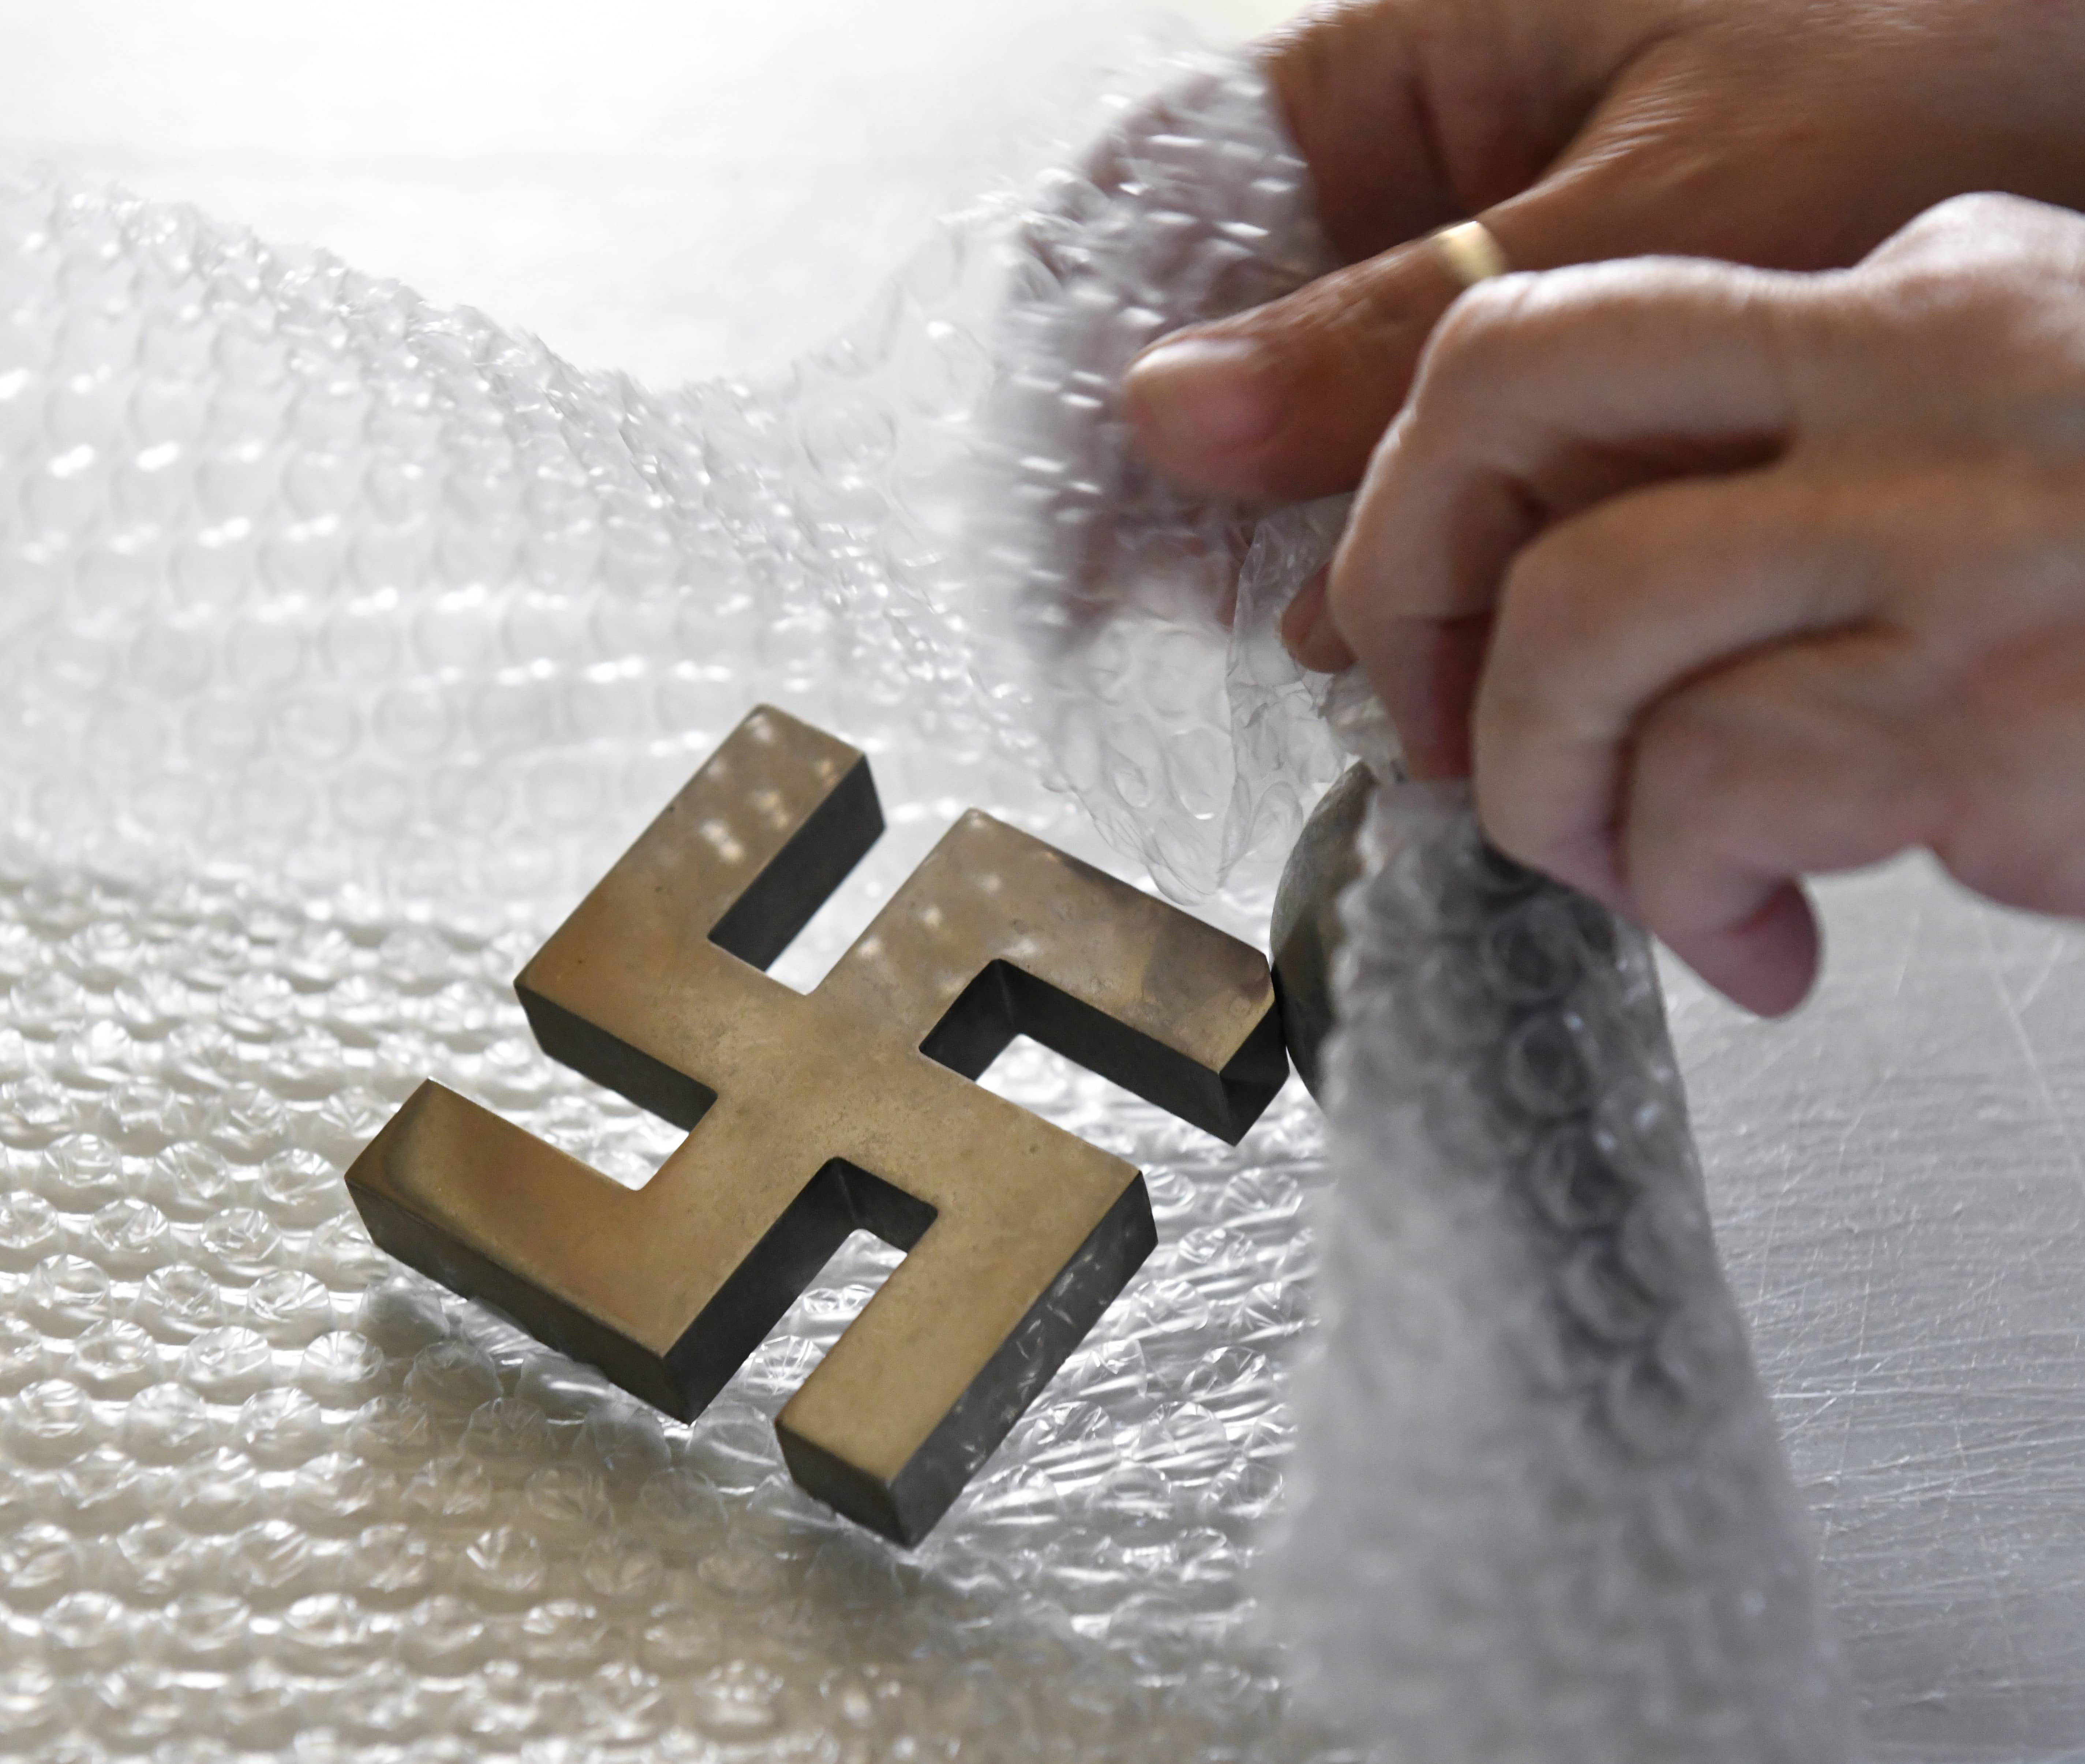 Photo of Tammy Pearce packing a recently sold swastika desk ornament